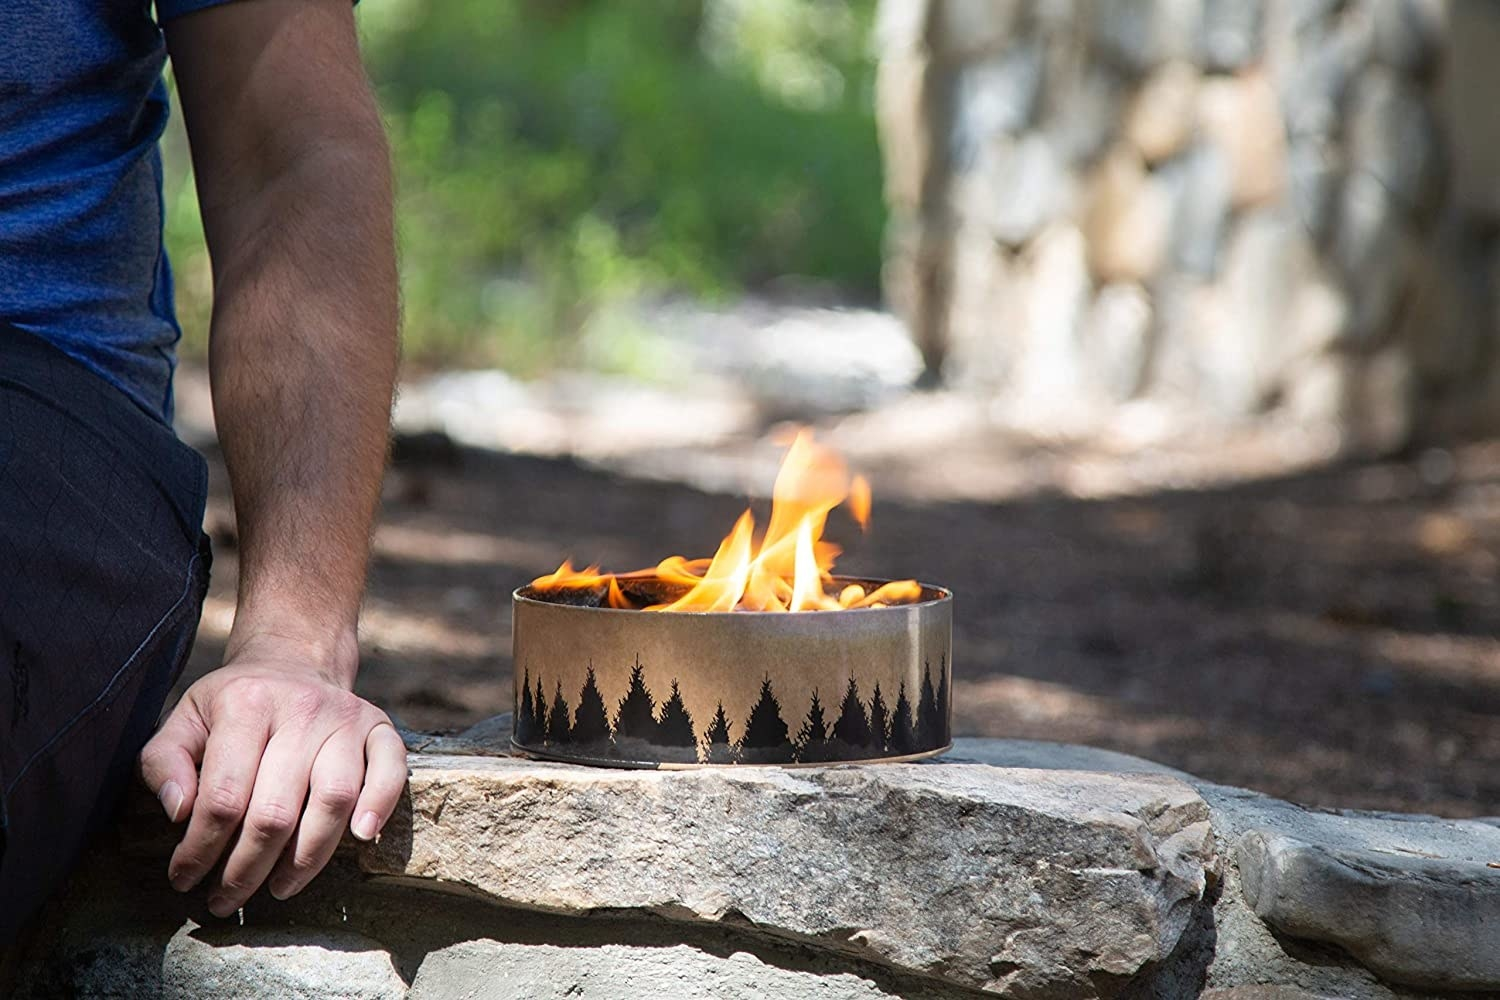 A person sitting next to the circular mini fireplace